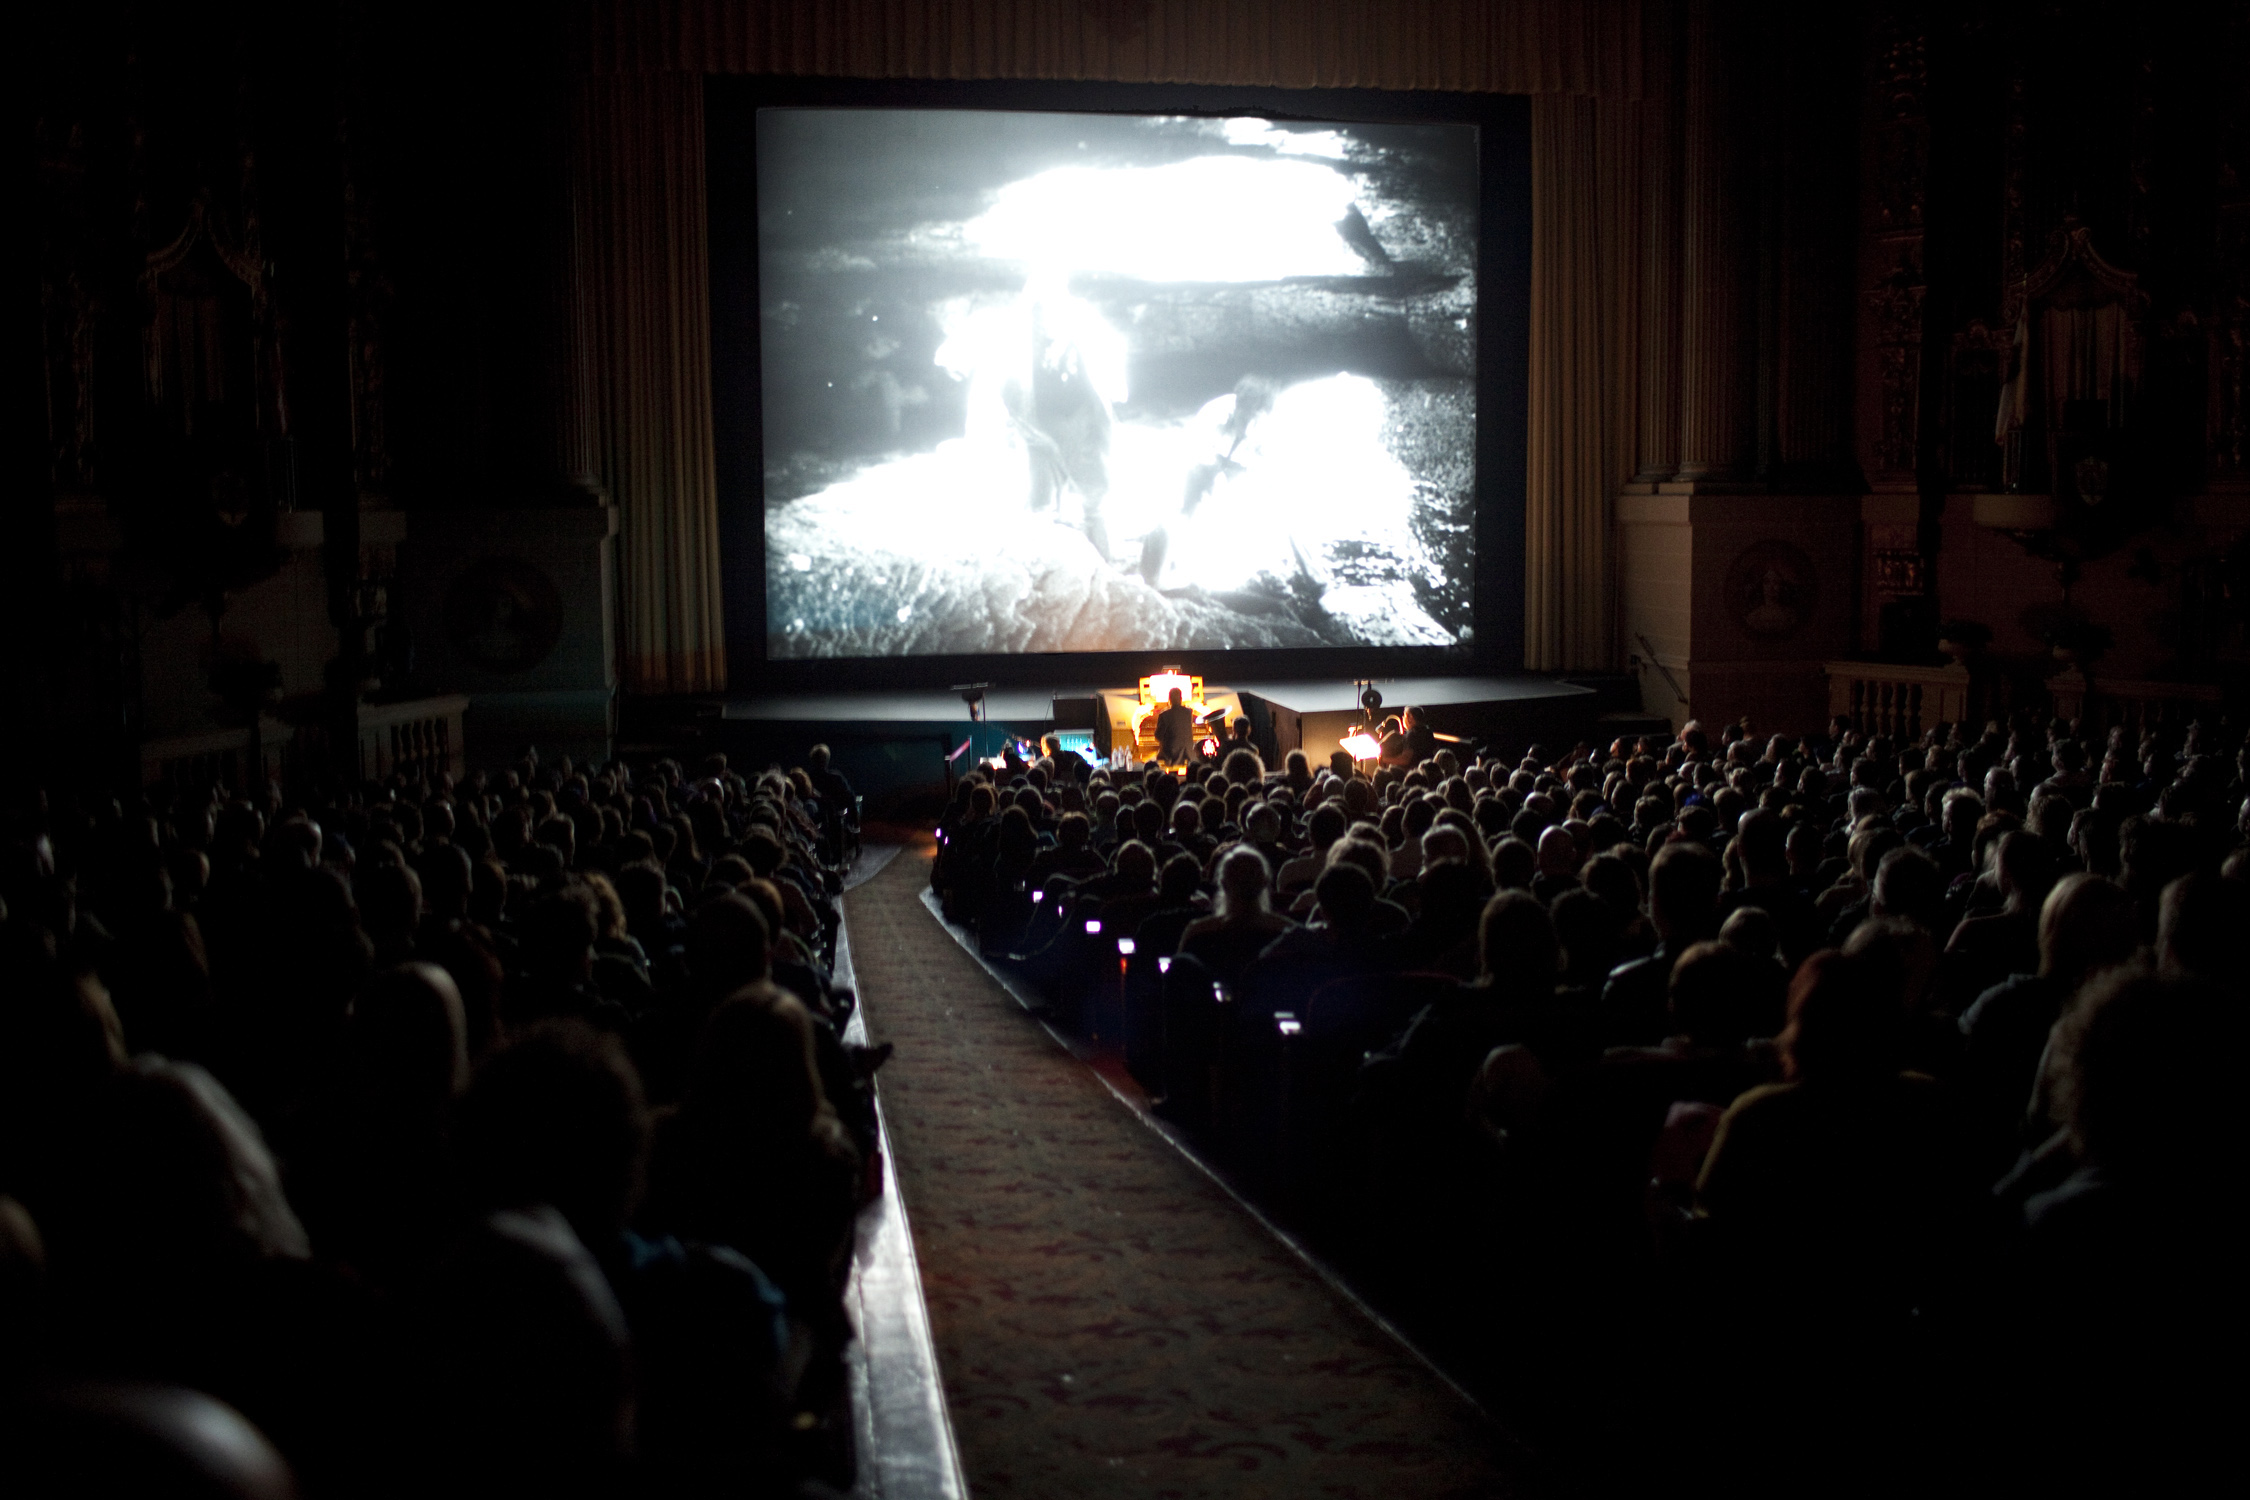 Stephin Merritt performing live to a screening of Stuart Paton's 20,000 LEAGUES UNDER THE SEA at SFIFF53. Photo: Pamela Gentile